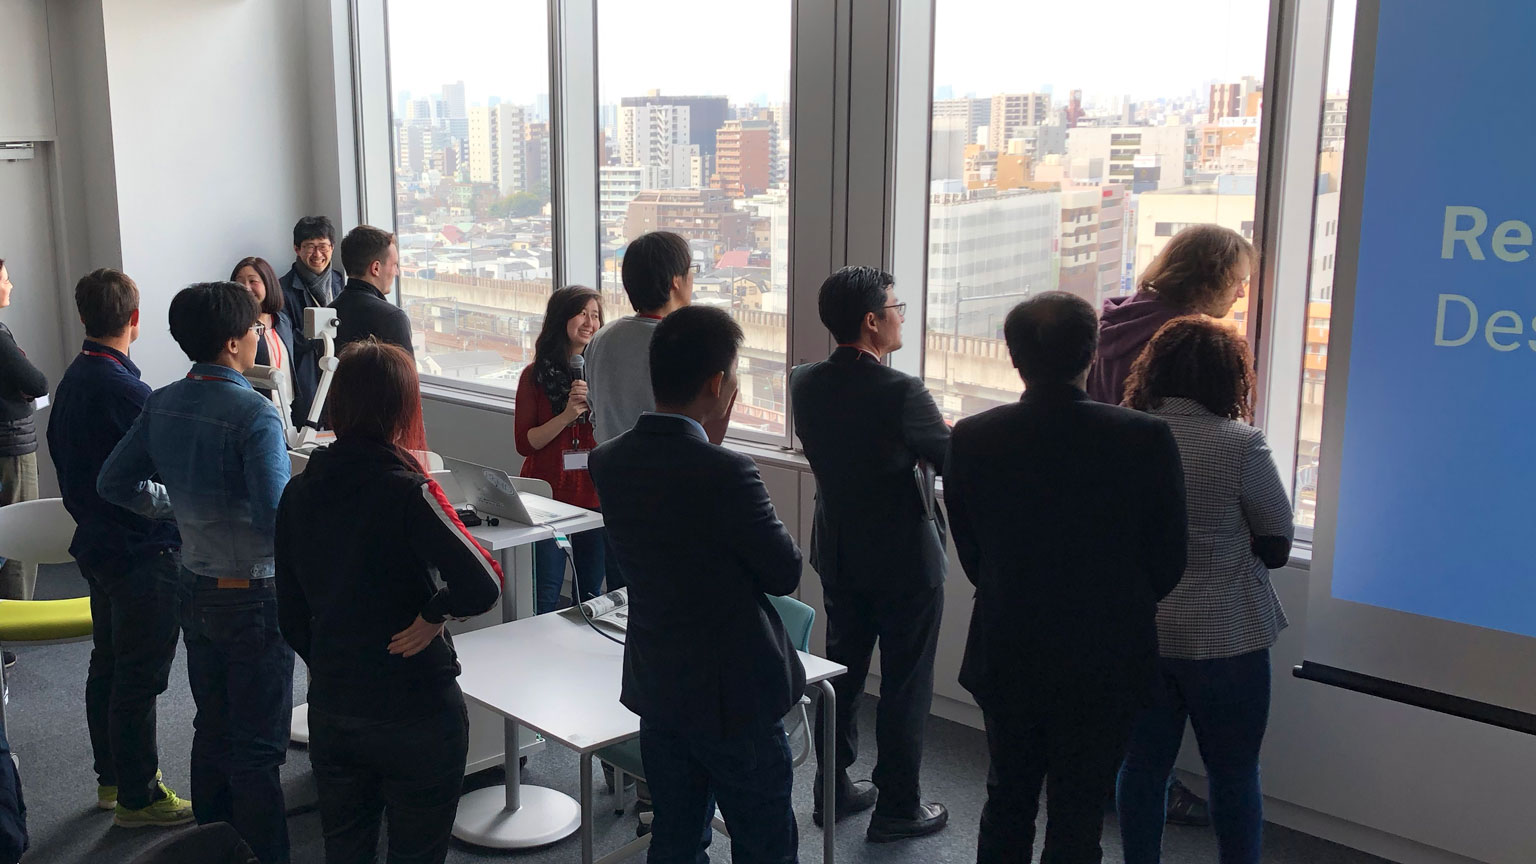 Students preparing for a presentation in a high rise in Tokyo.